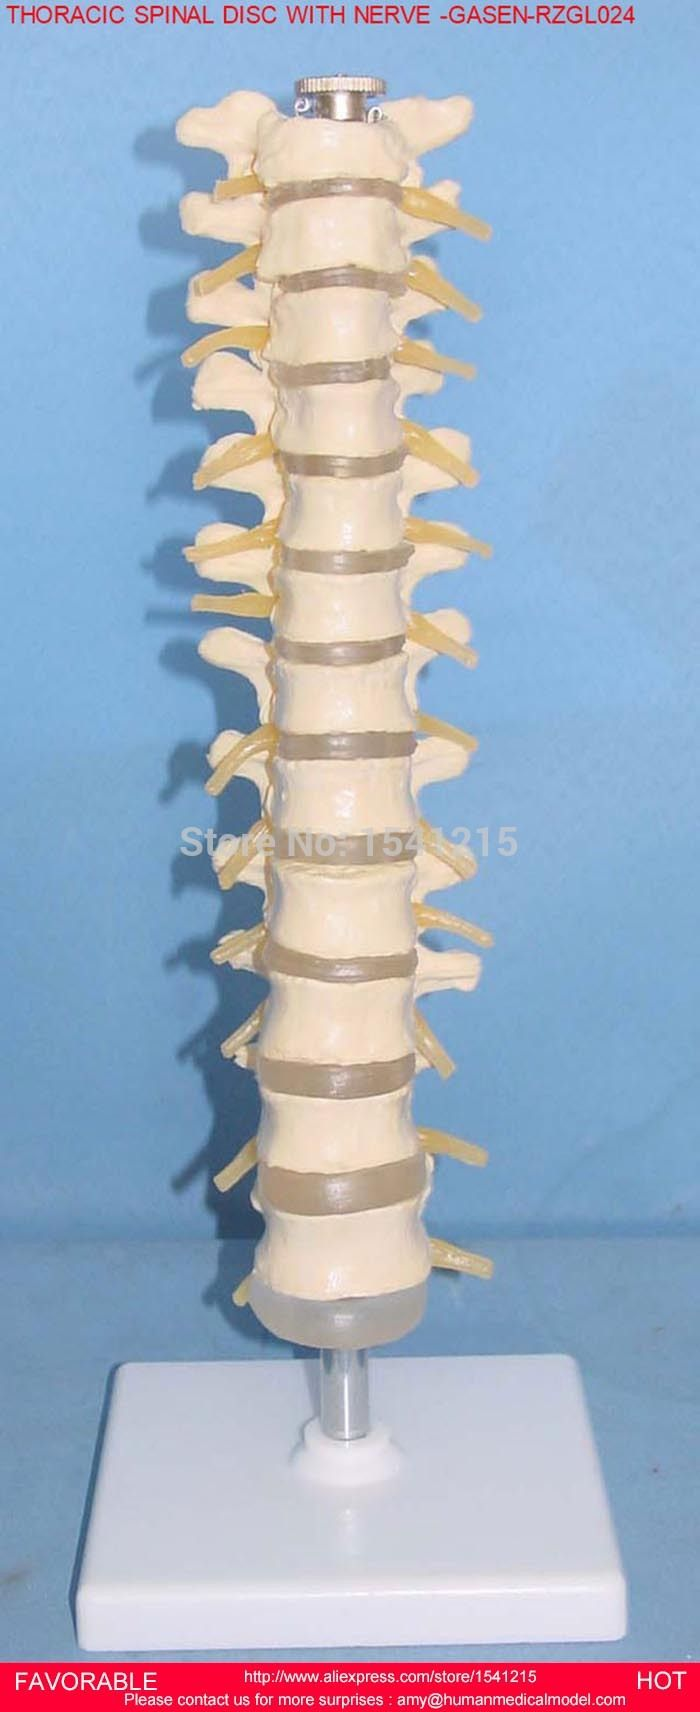 THORACIC SPINAL CORD,MODEL OF THE THORACIC VERTEBRA,THORACIC VERTEBRA ,SPINAL CORD,BANDTHORACIC DISC AND NERVE -GASEN-RZGL024